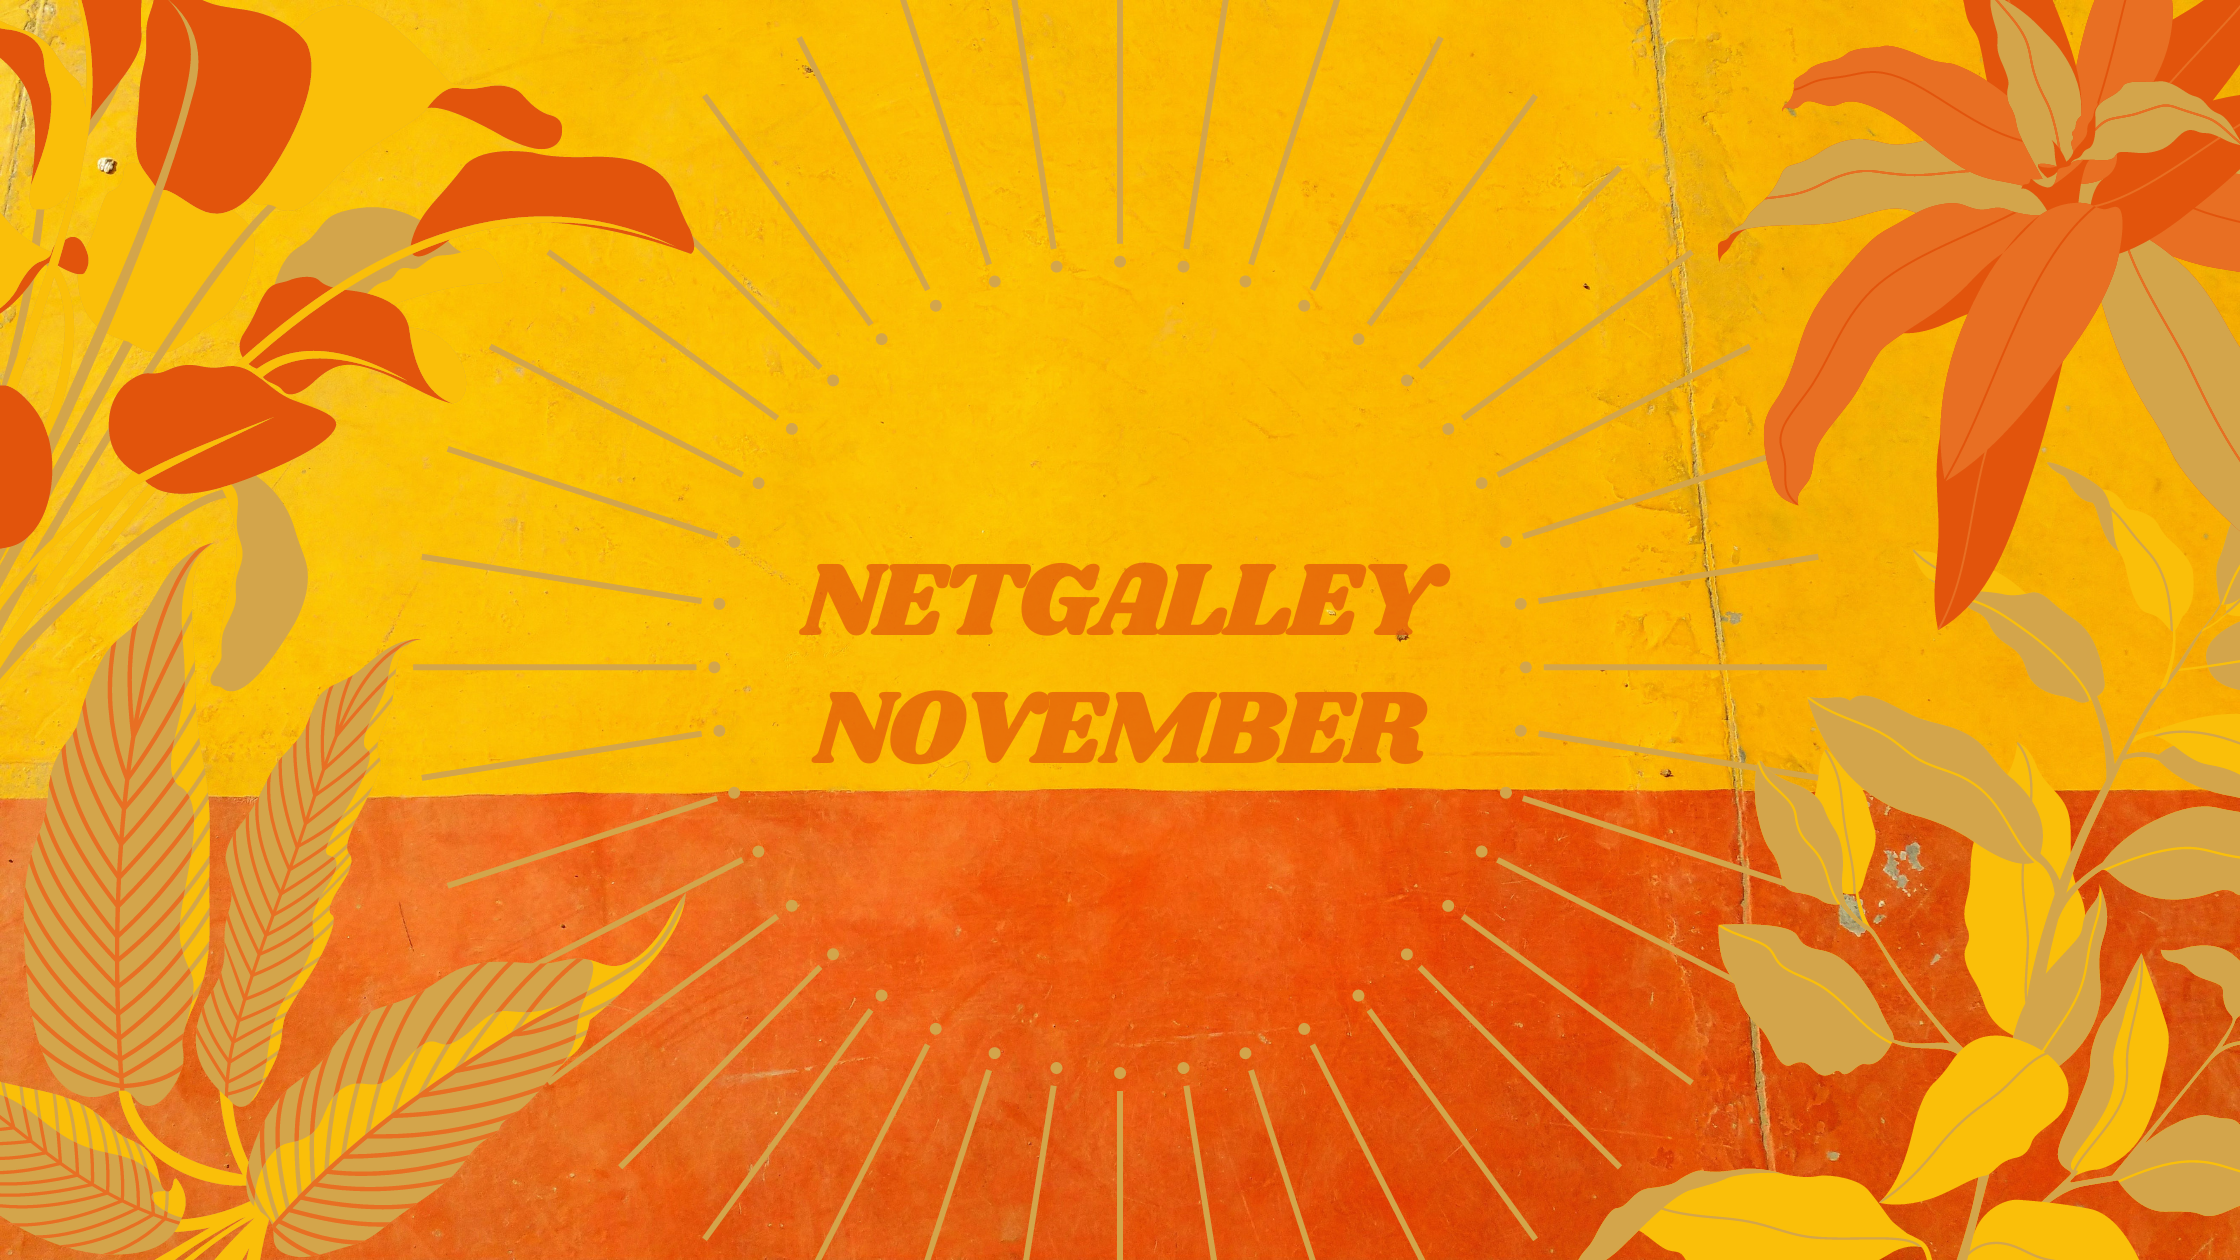 NetGalley November — Learning From My Mistakes